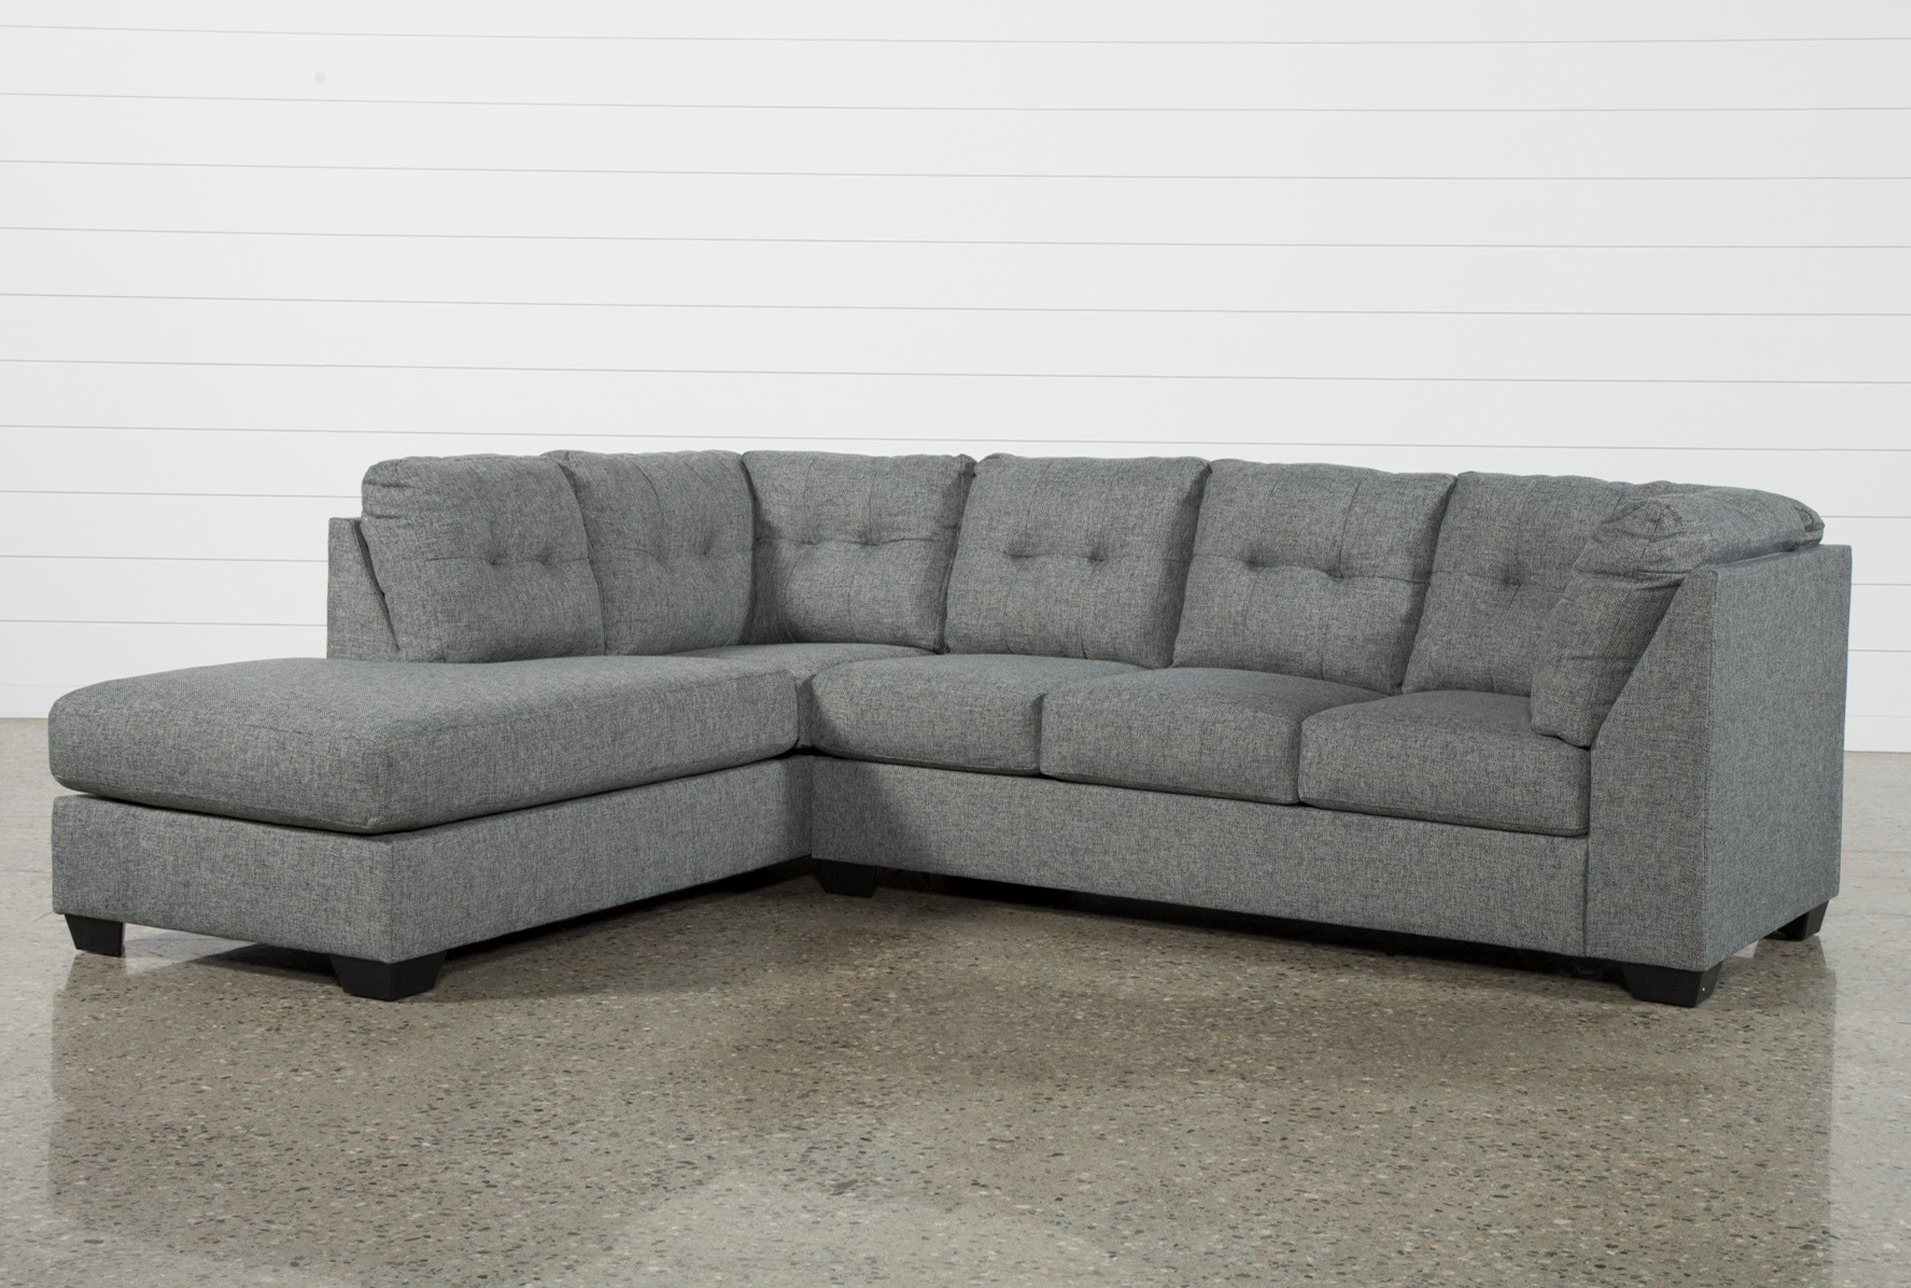 Lucy Grey 2 Piece Sleeper Sectionals With Raf Chaise With Regard To 2019 Sleeper Sectional With Chaise – Tidex (Gallery 8 of 20)